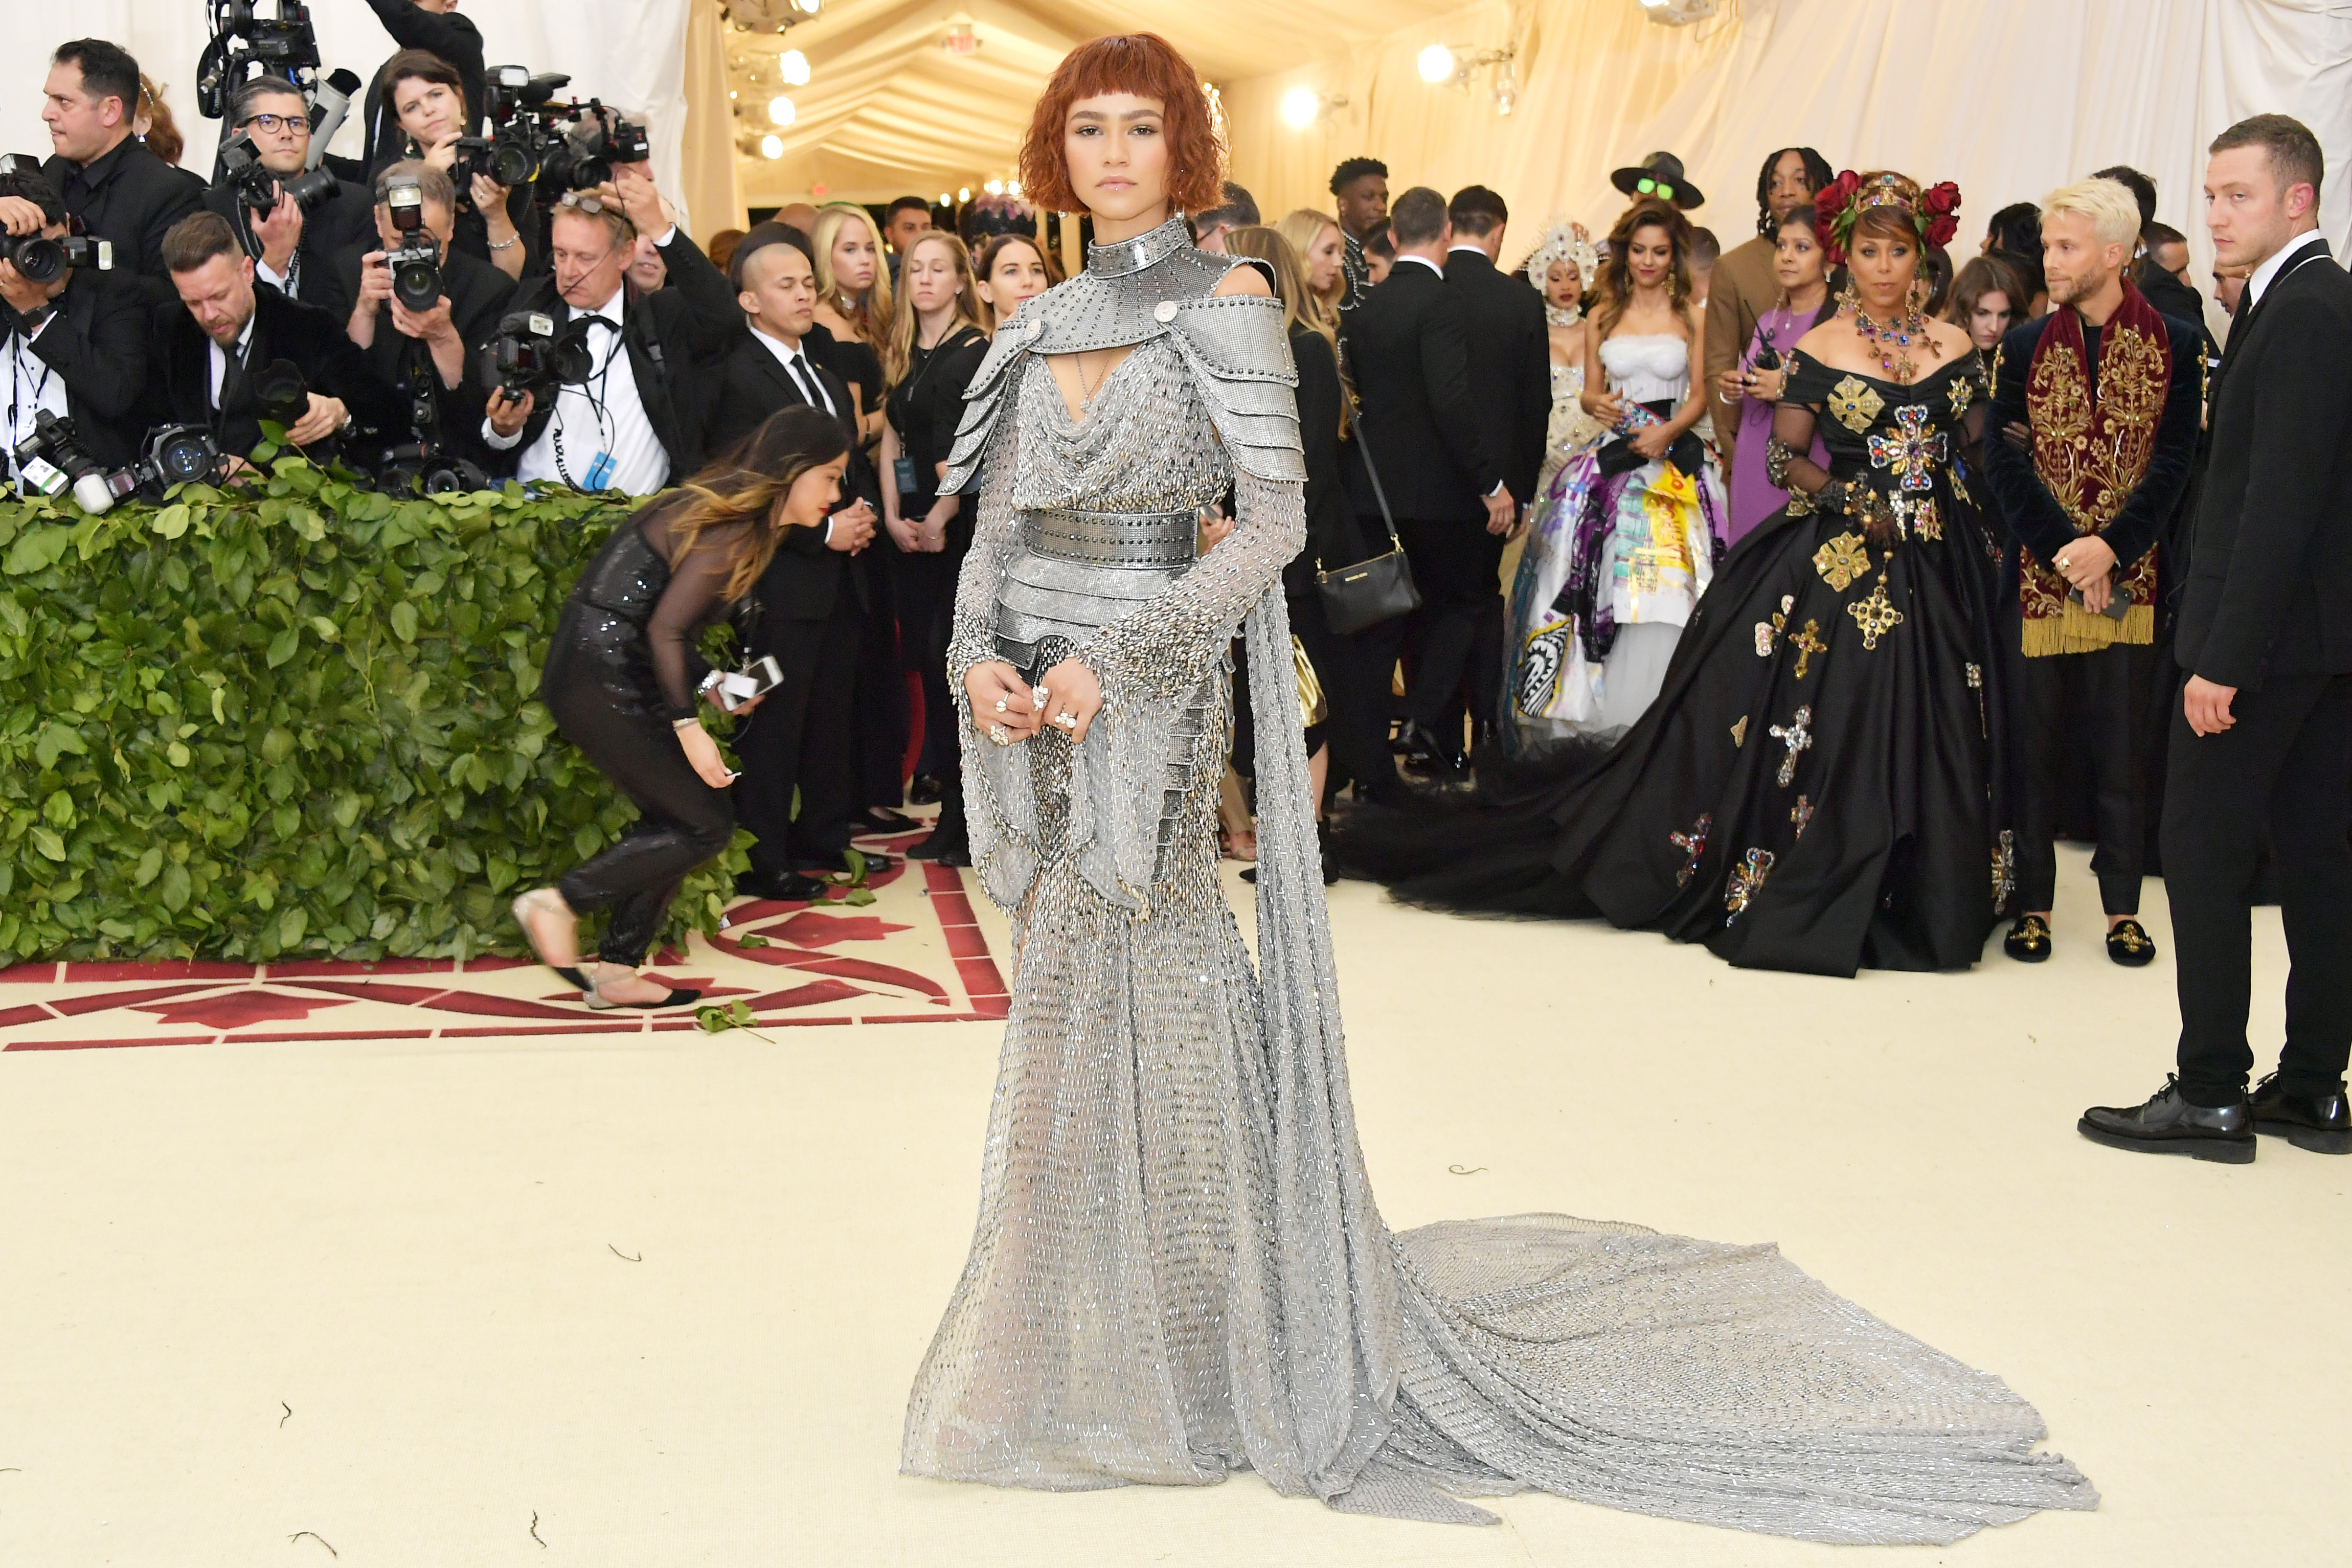 Zendaya attends the Heavenly Bodies: Fashion & The Catholic Imagination Costume Institute Gala at The Metropolitan Museum of Art on May 7, 2018 in New York City